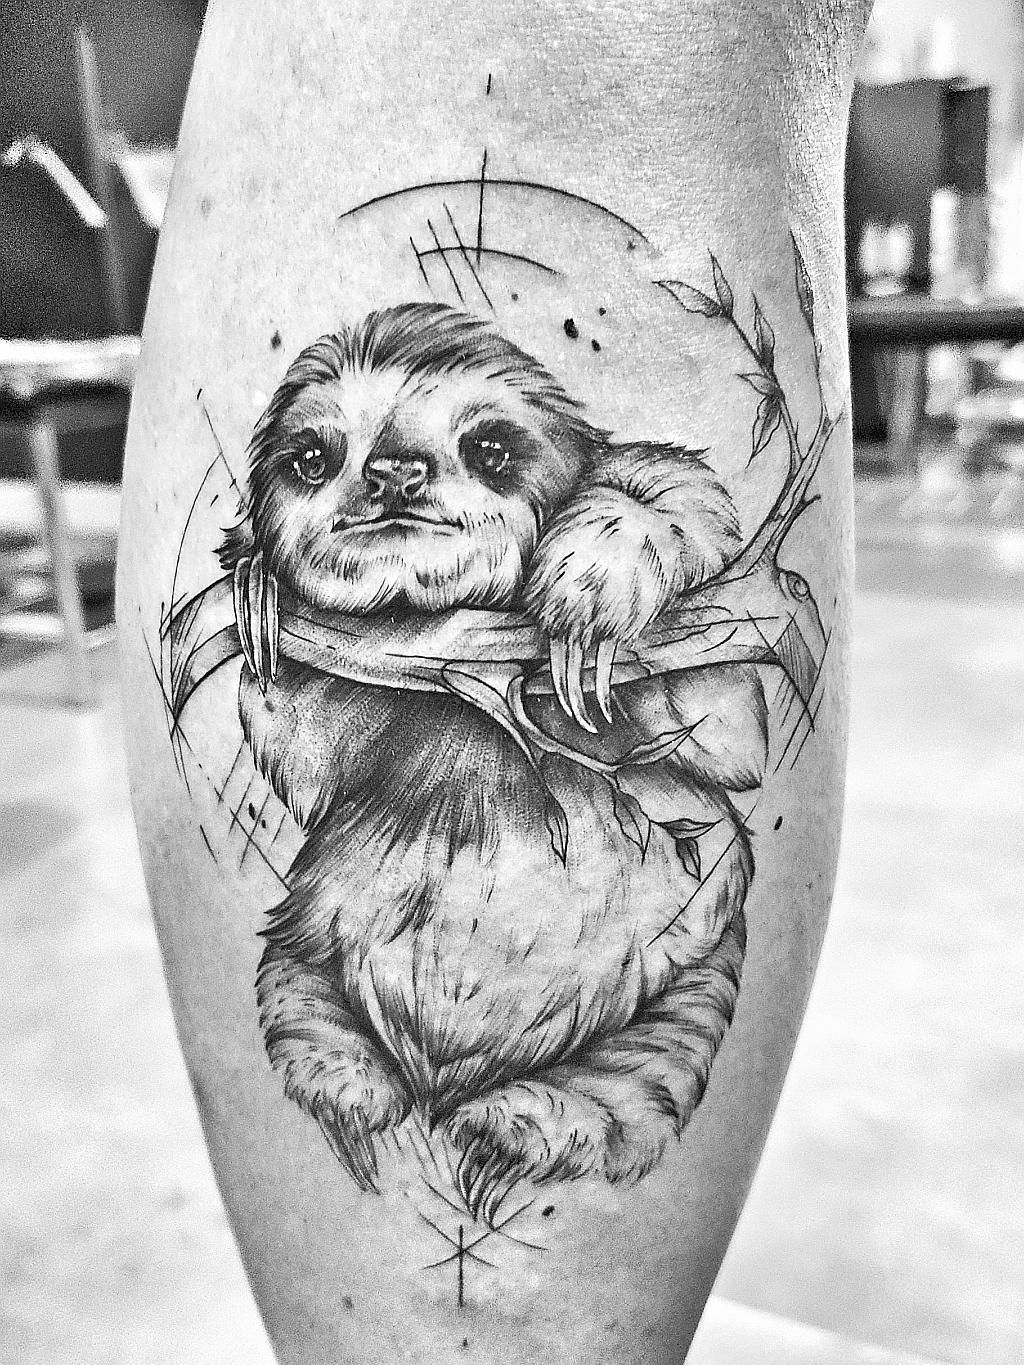 Finally Got Around To Doing This Piece Done By Francelle At True Blue In Pretoria South Africa En 2020 Tatuaje De Pereza Oso Perezoso Tatuajes De Osos